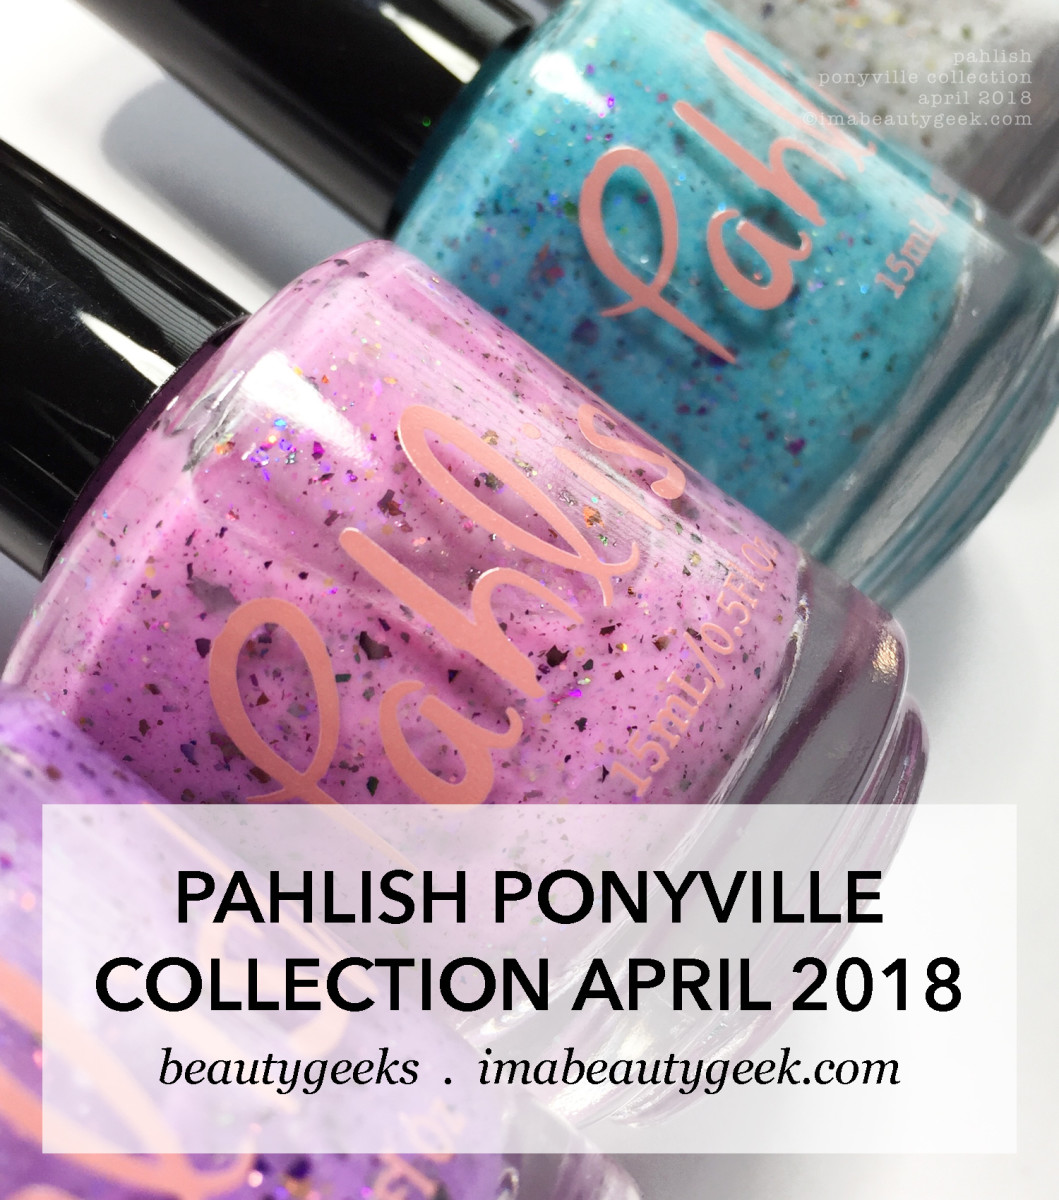 Pahlish Ponyville Collection April 2018 swatches review-Manigeek-BEAUTYGEEKS